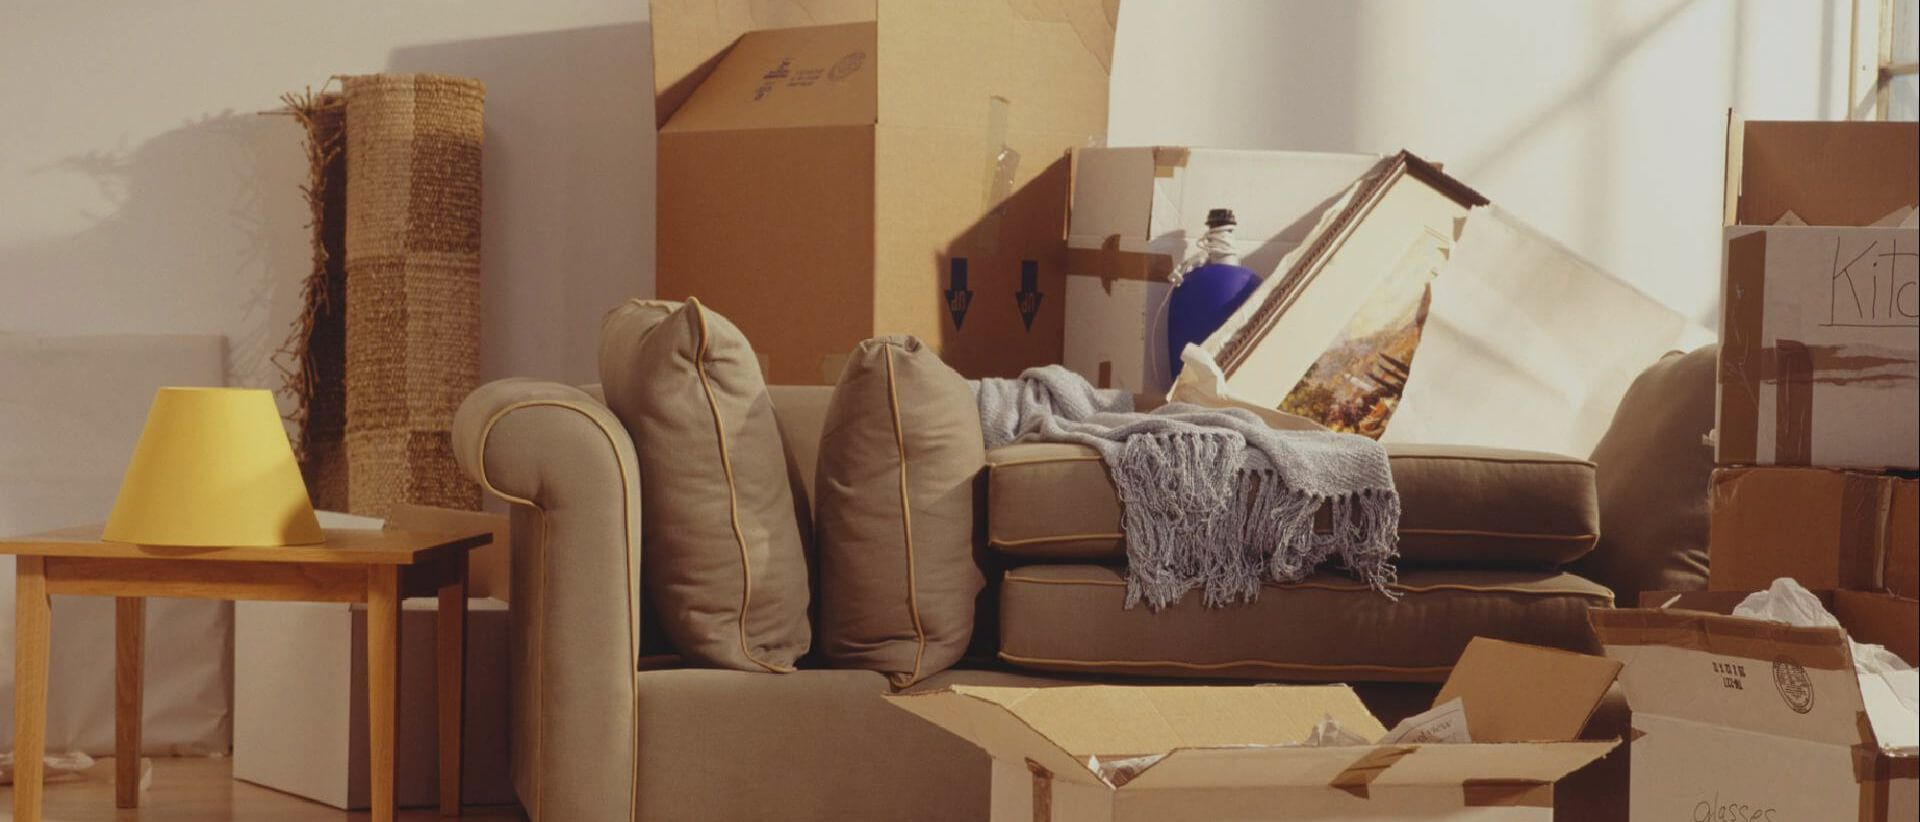 How to safely store your furniture while moving